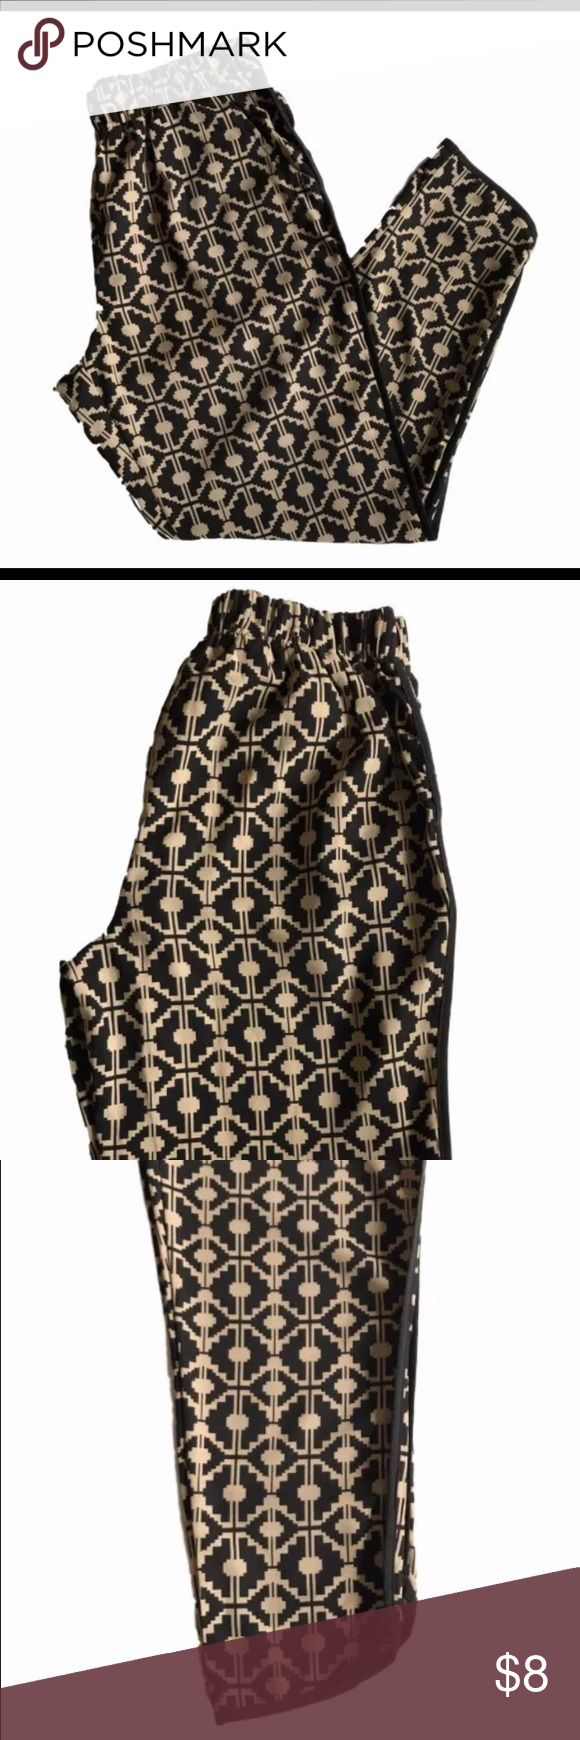 Forever 21 Women's Printed Woven Pants Size S • 97% Polyester  • 3% Elastane  • Black and Beige • Side pockets  • Elastic waistband  • Smoke free Forever 21 Pants